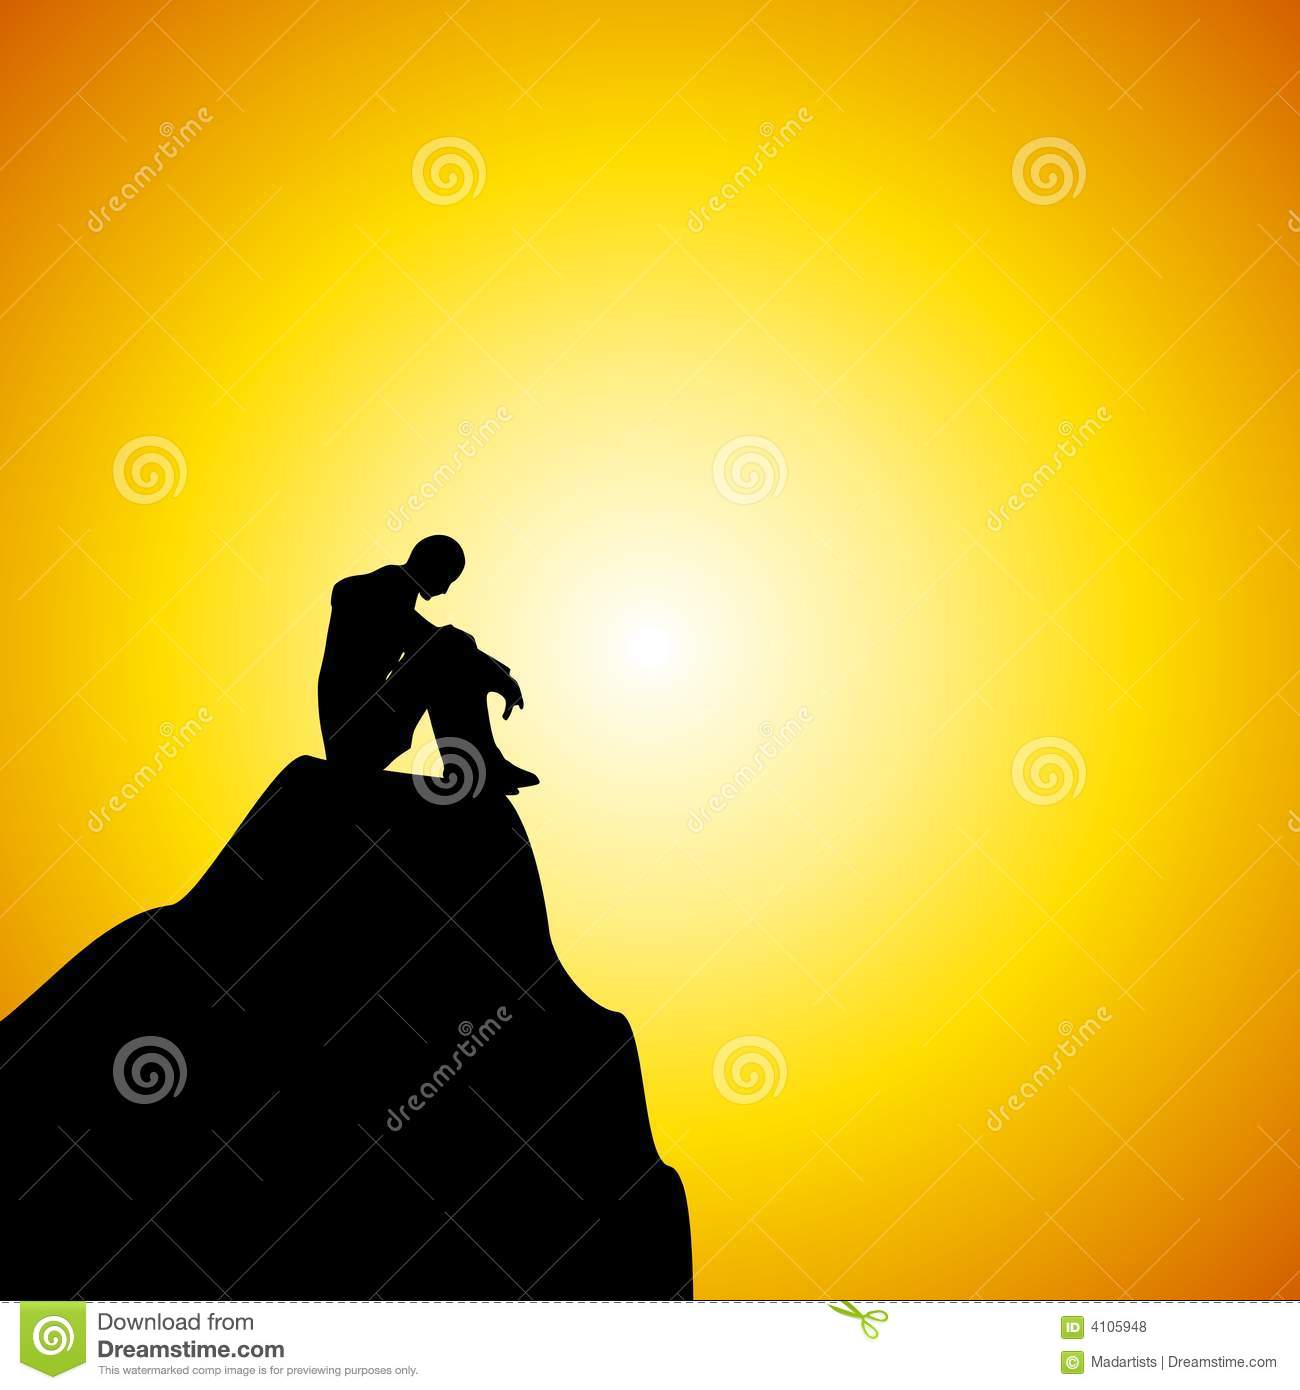 Man Sitting Alone on Mountain At Sunset